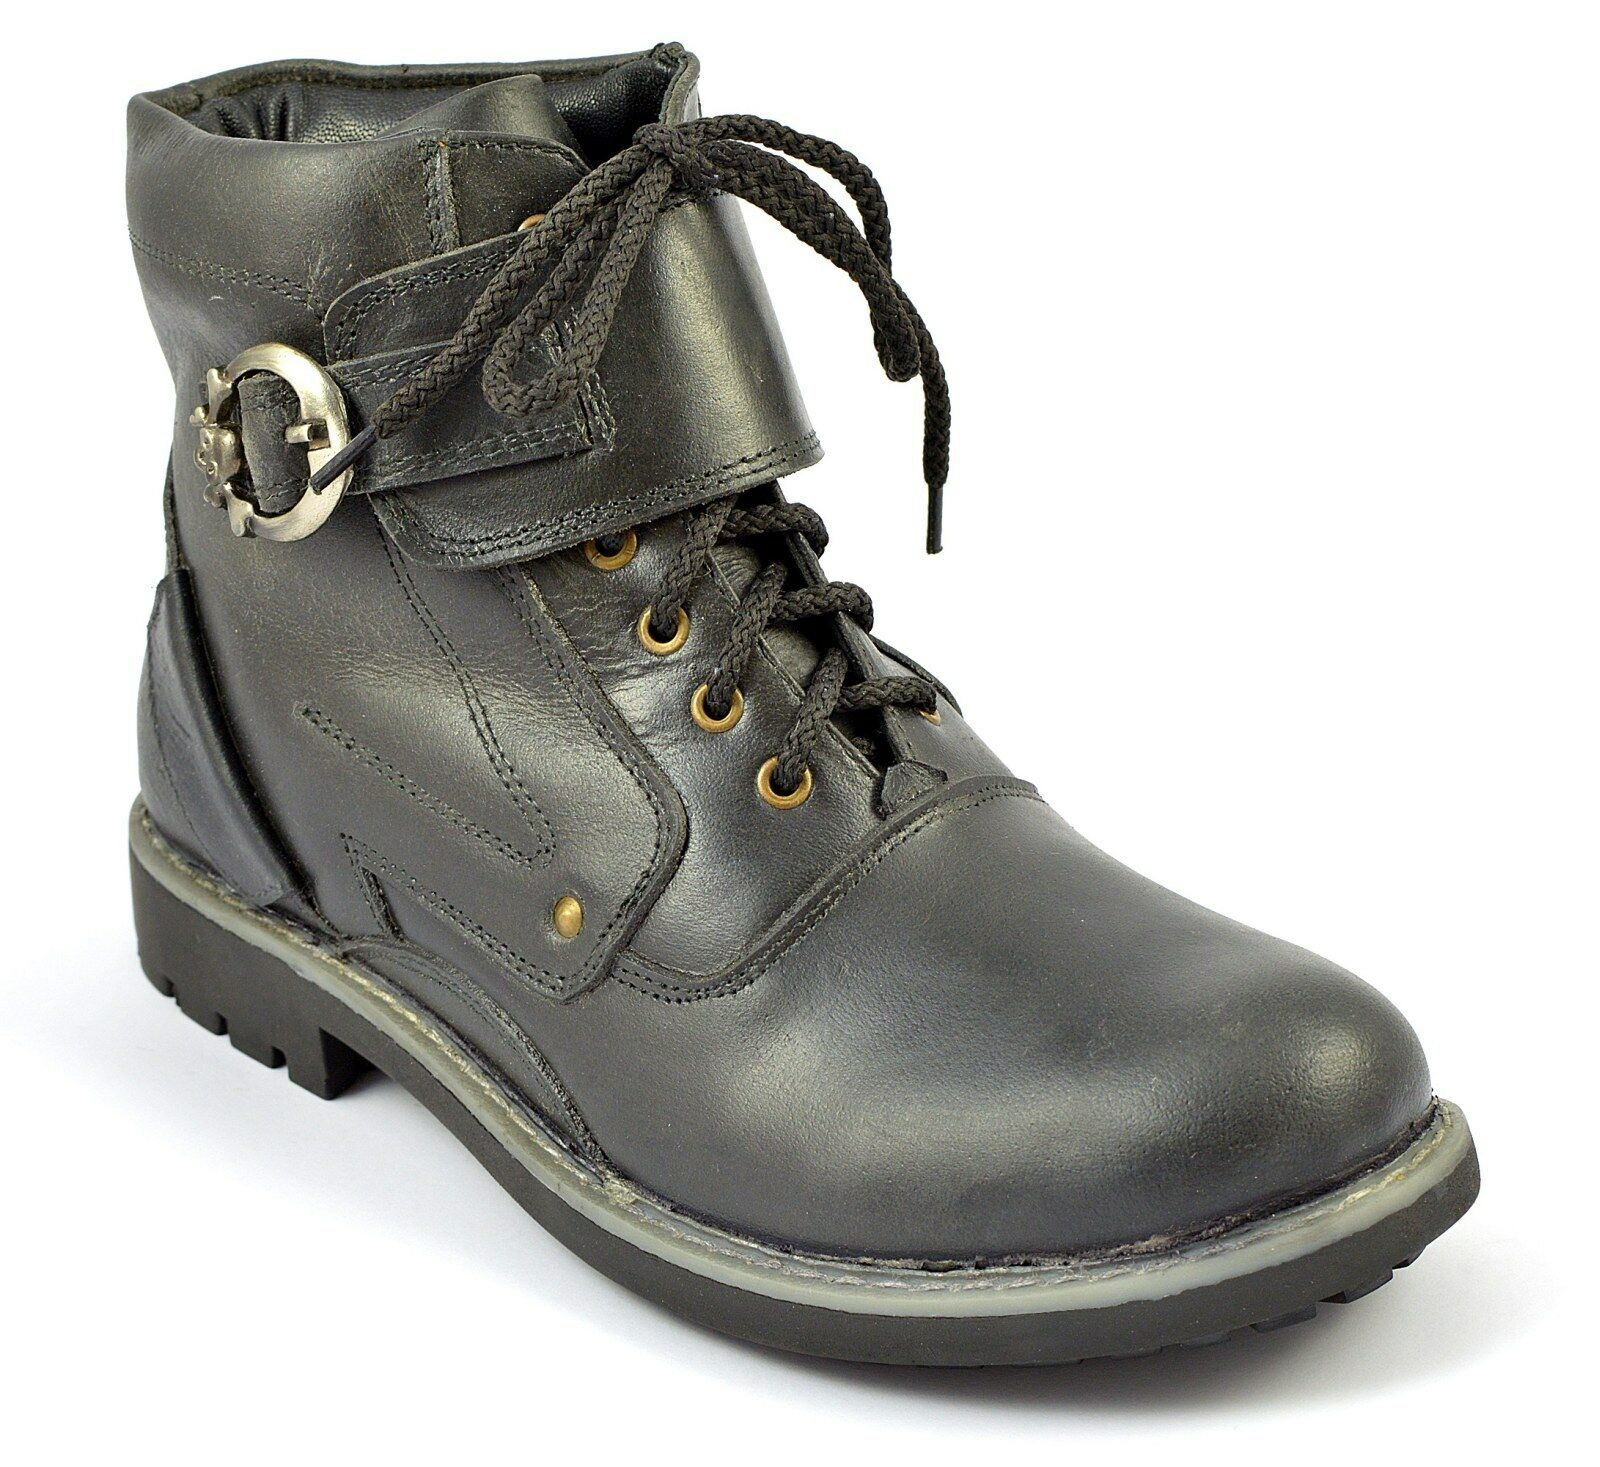 PARADISE LIFESTYLE Hombre ANKLE botas Negro RUBBER SOLE LEATHER LEATHER LEATHER BIKER Zapatos Talla 3ab522